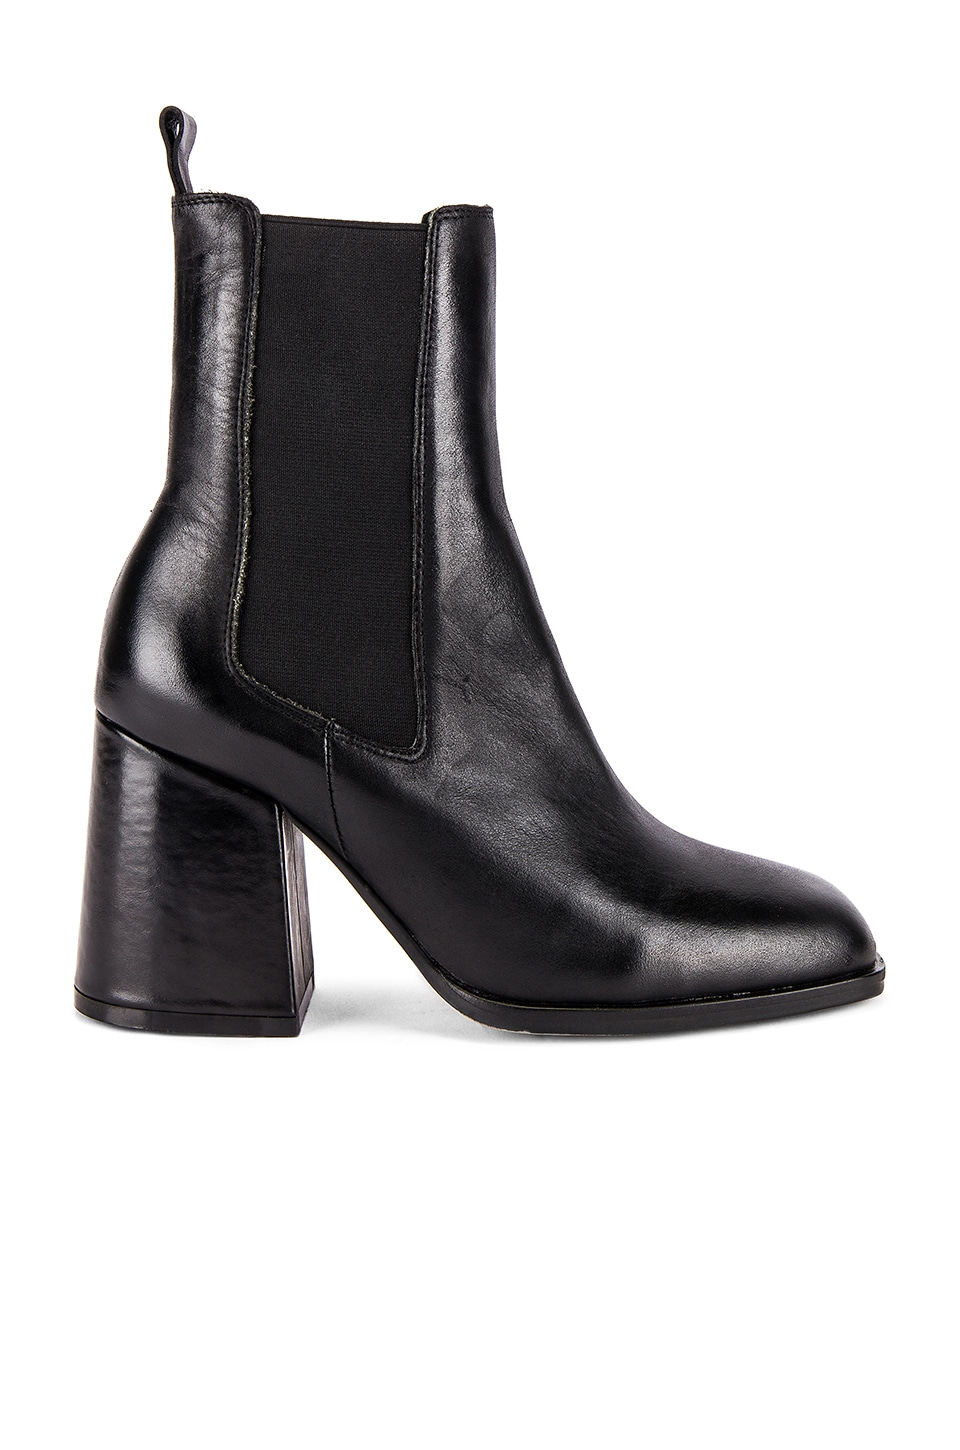 Alias Mae Pepa Bootie in Black Burnished